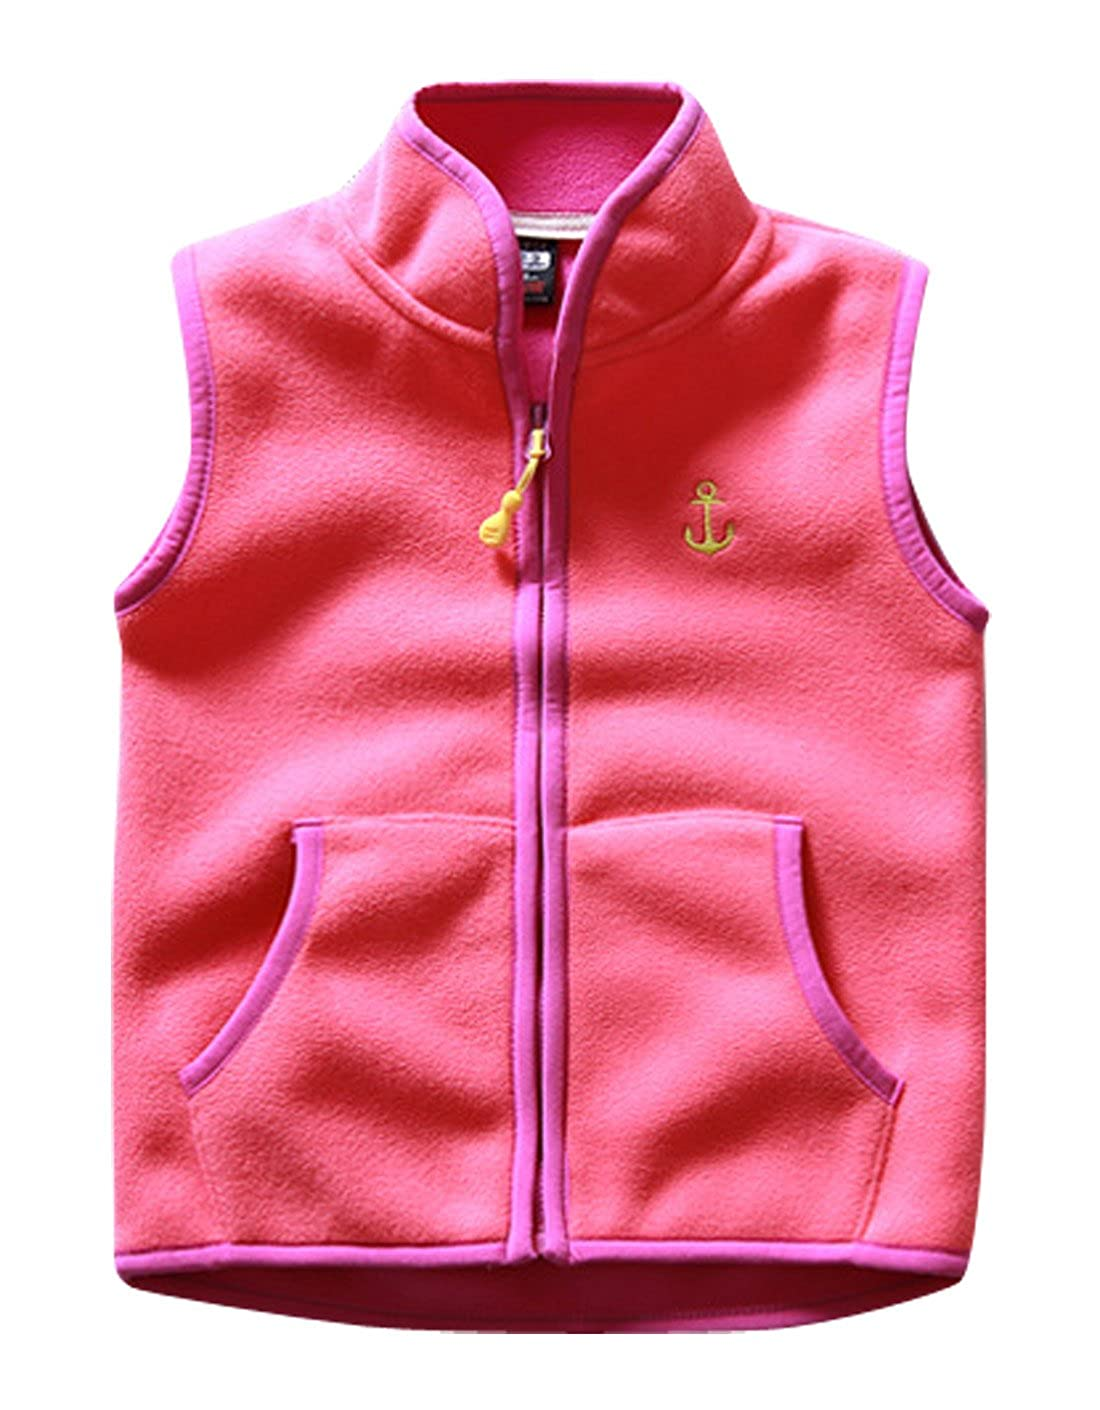 Aivtalk Girls Fleece Vest Zipper Up Warm Pocket Sleeveless Jacket 2-8T